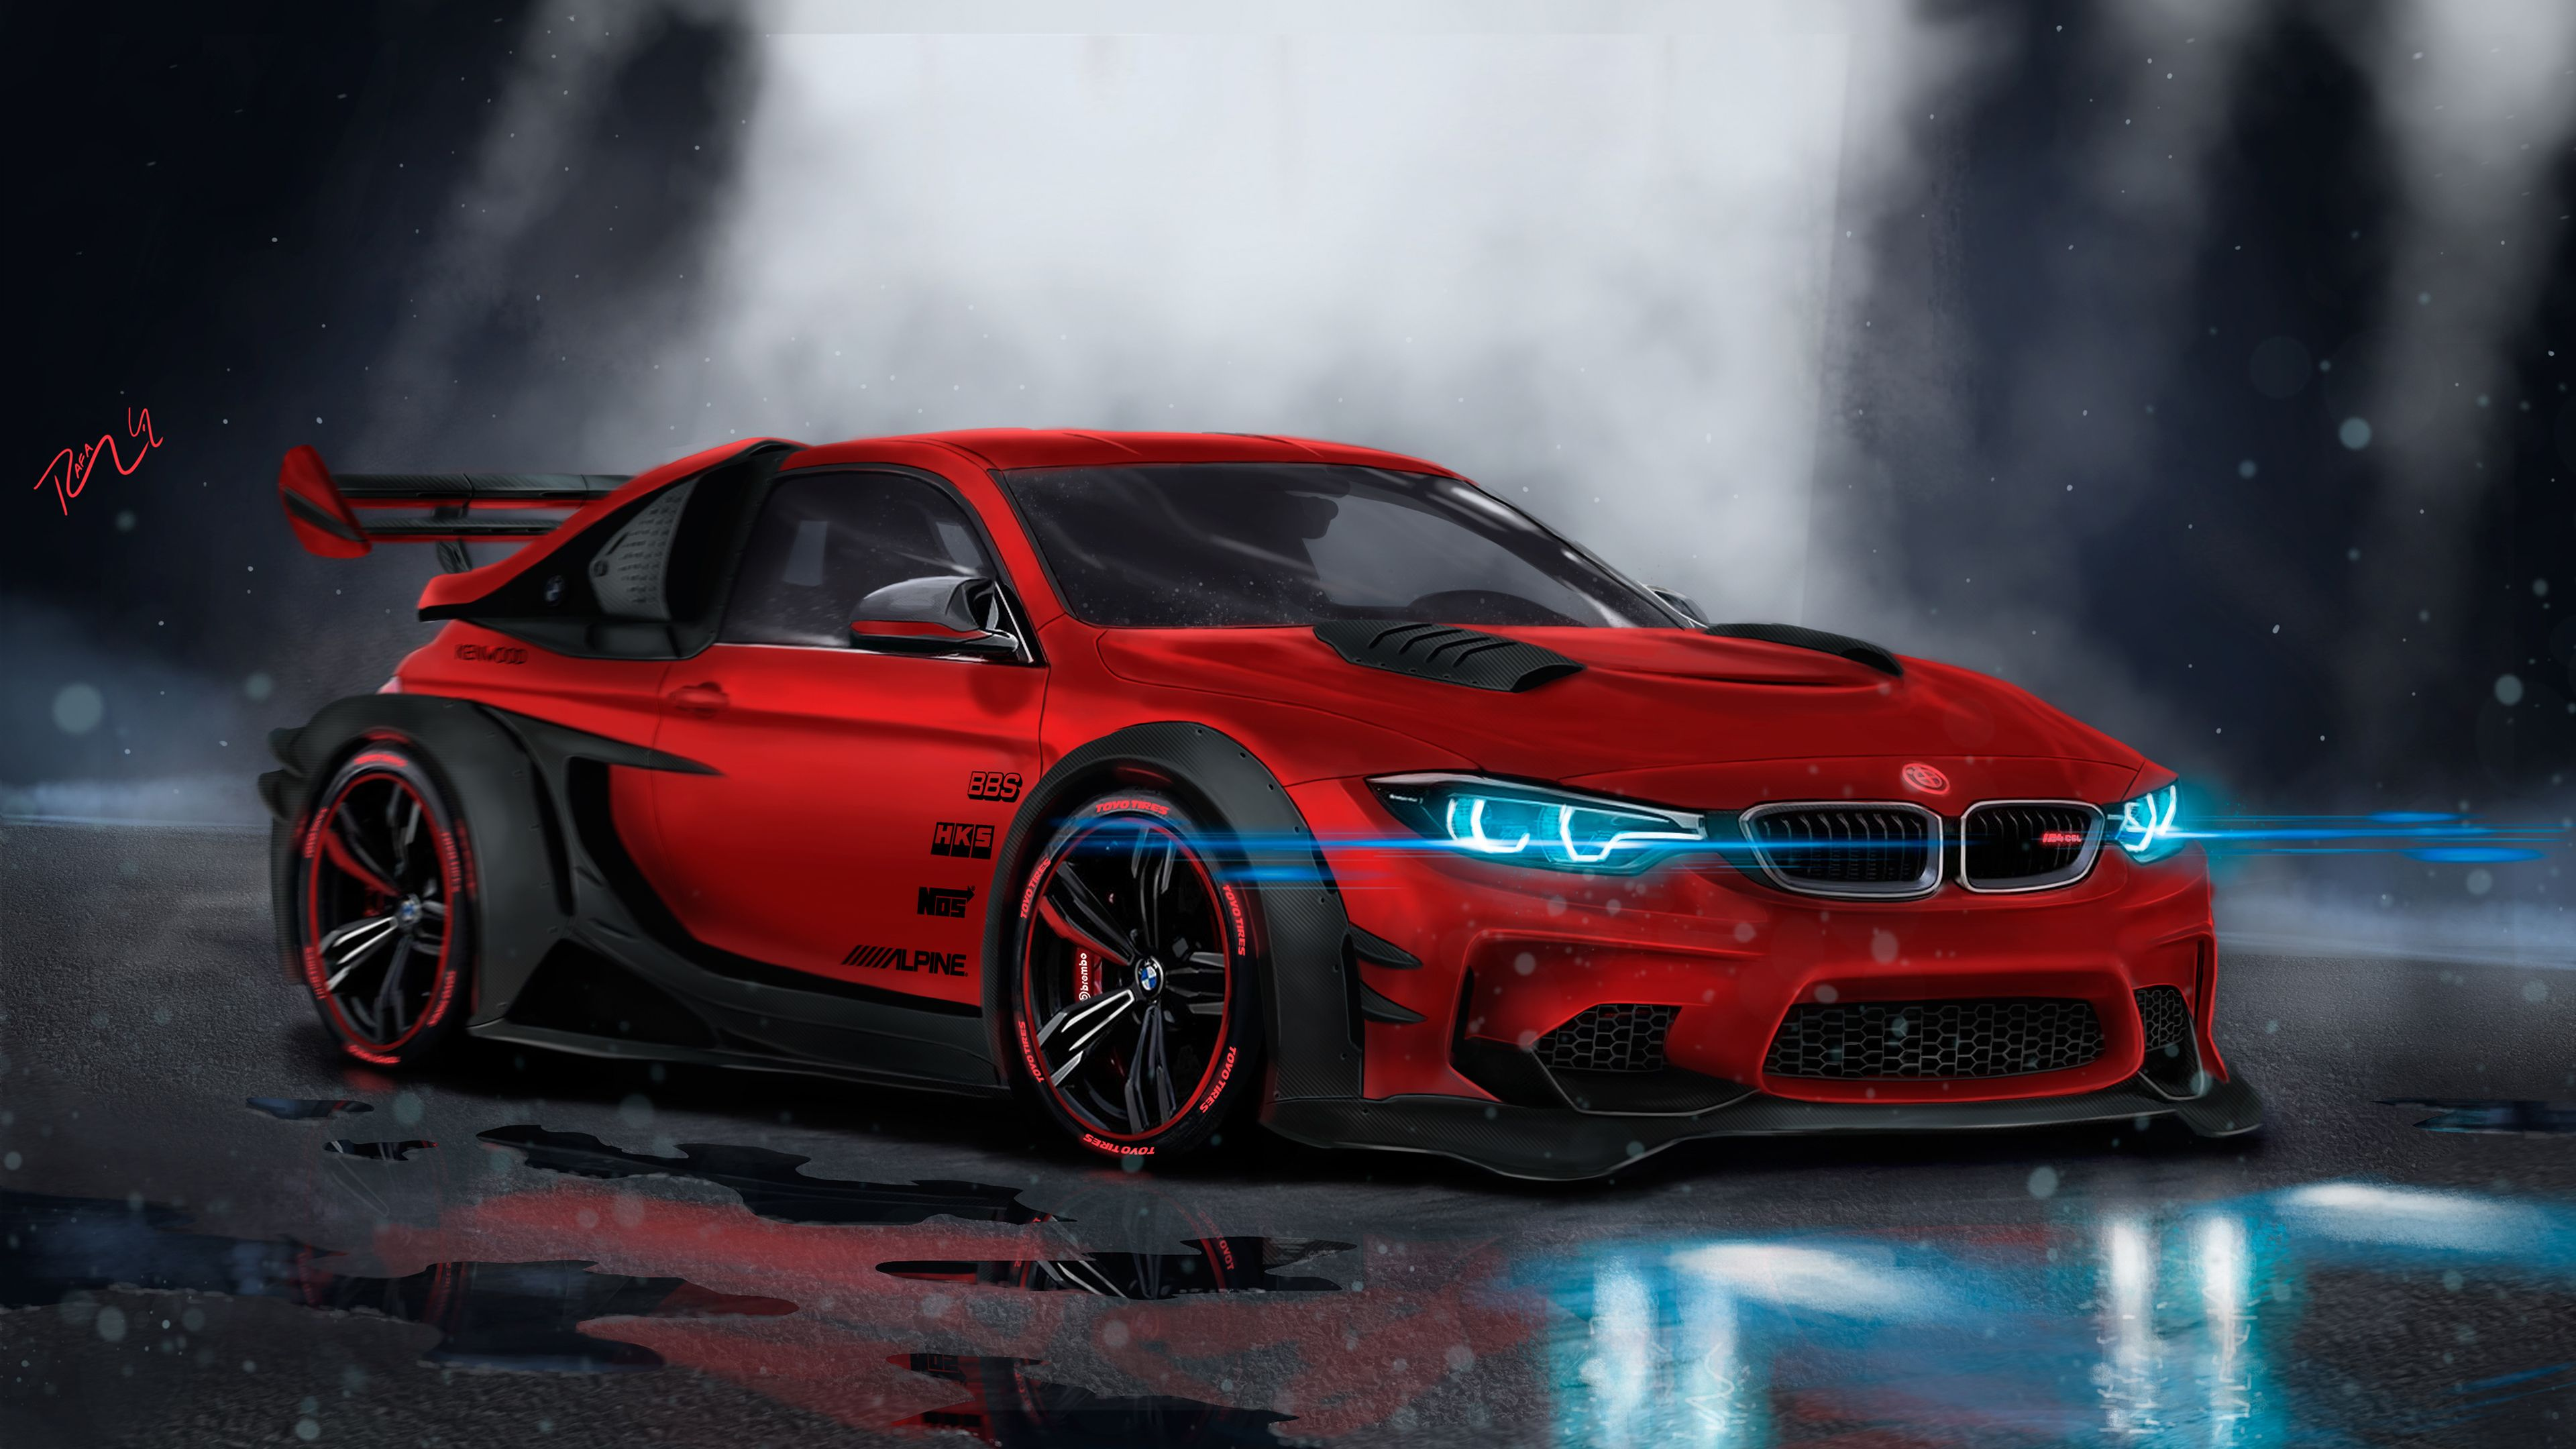 Download 102 Wallpaper Hd Car Gratis